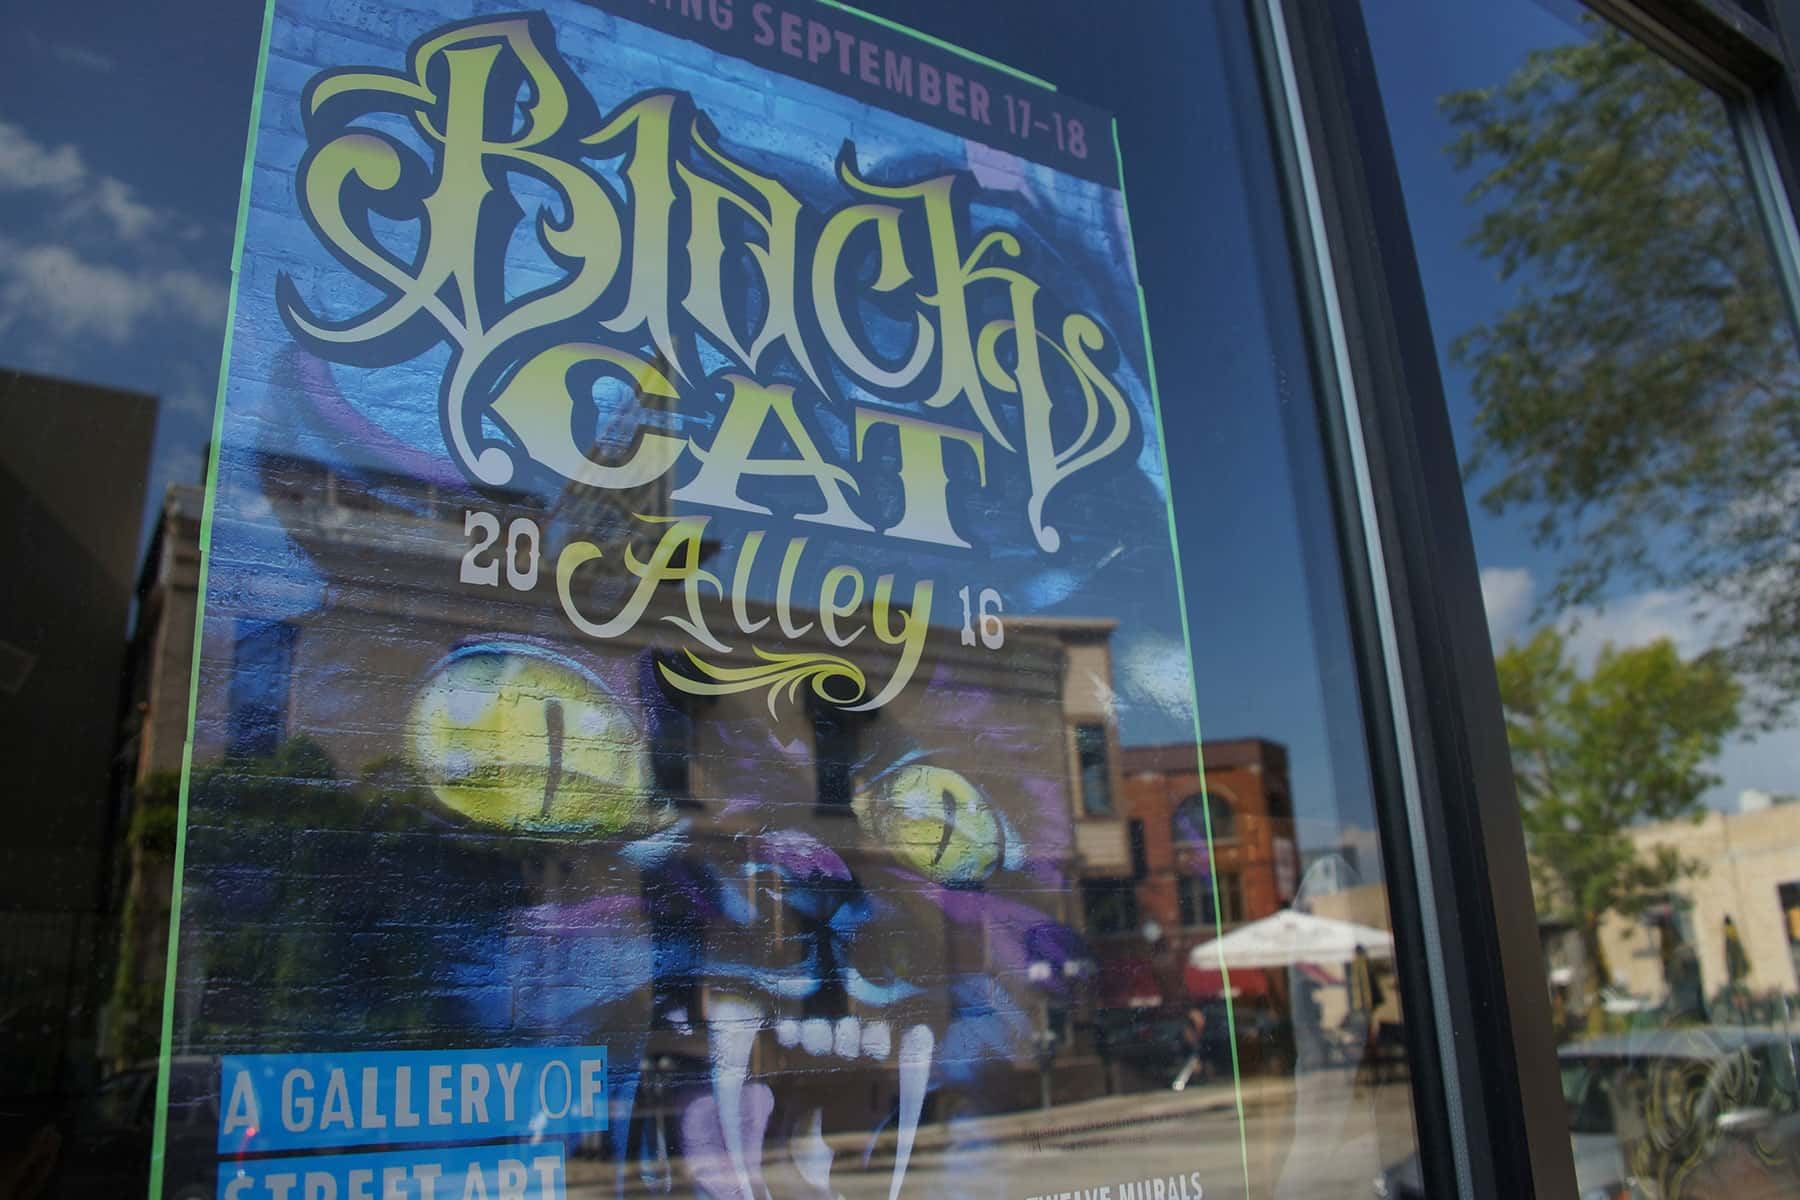 090616_blackcatalley-day1_201